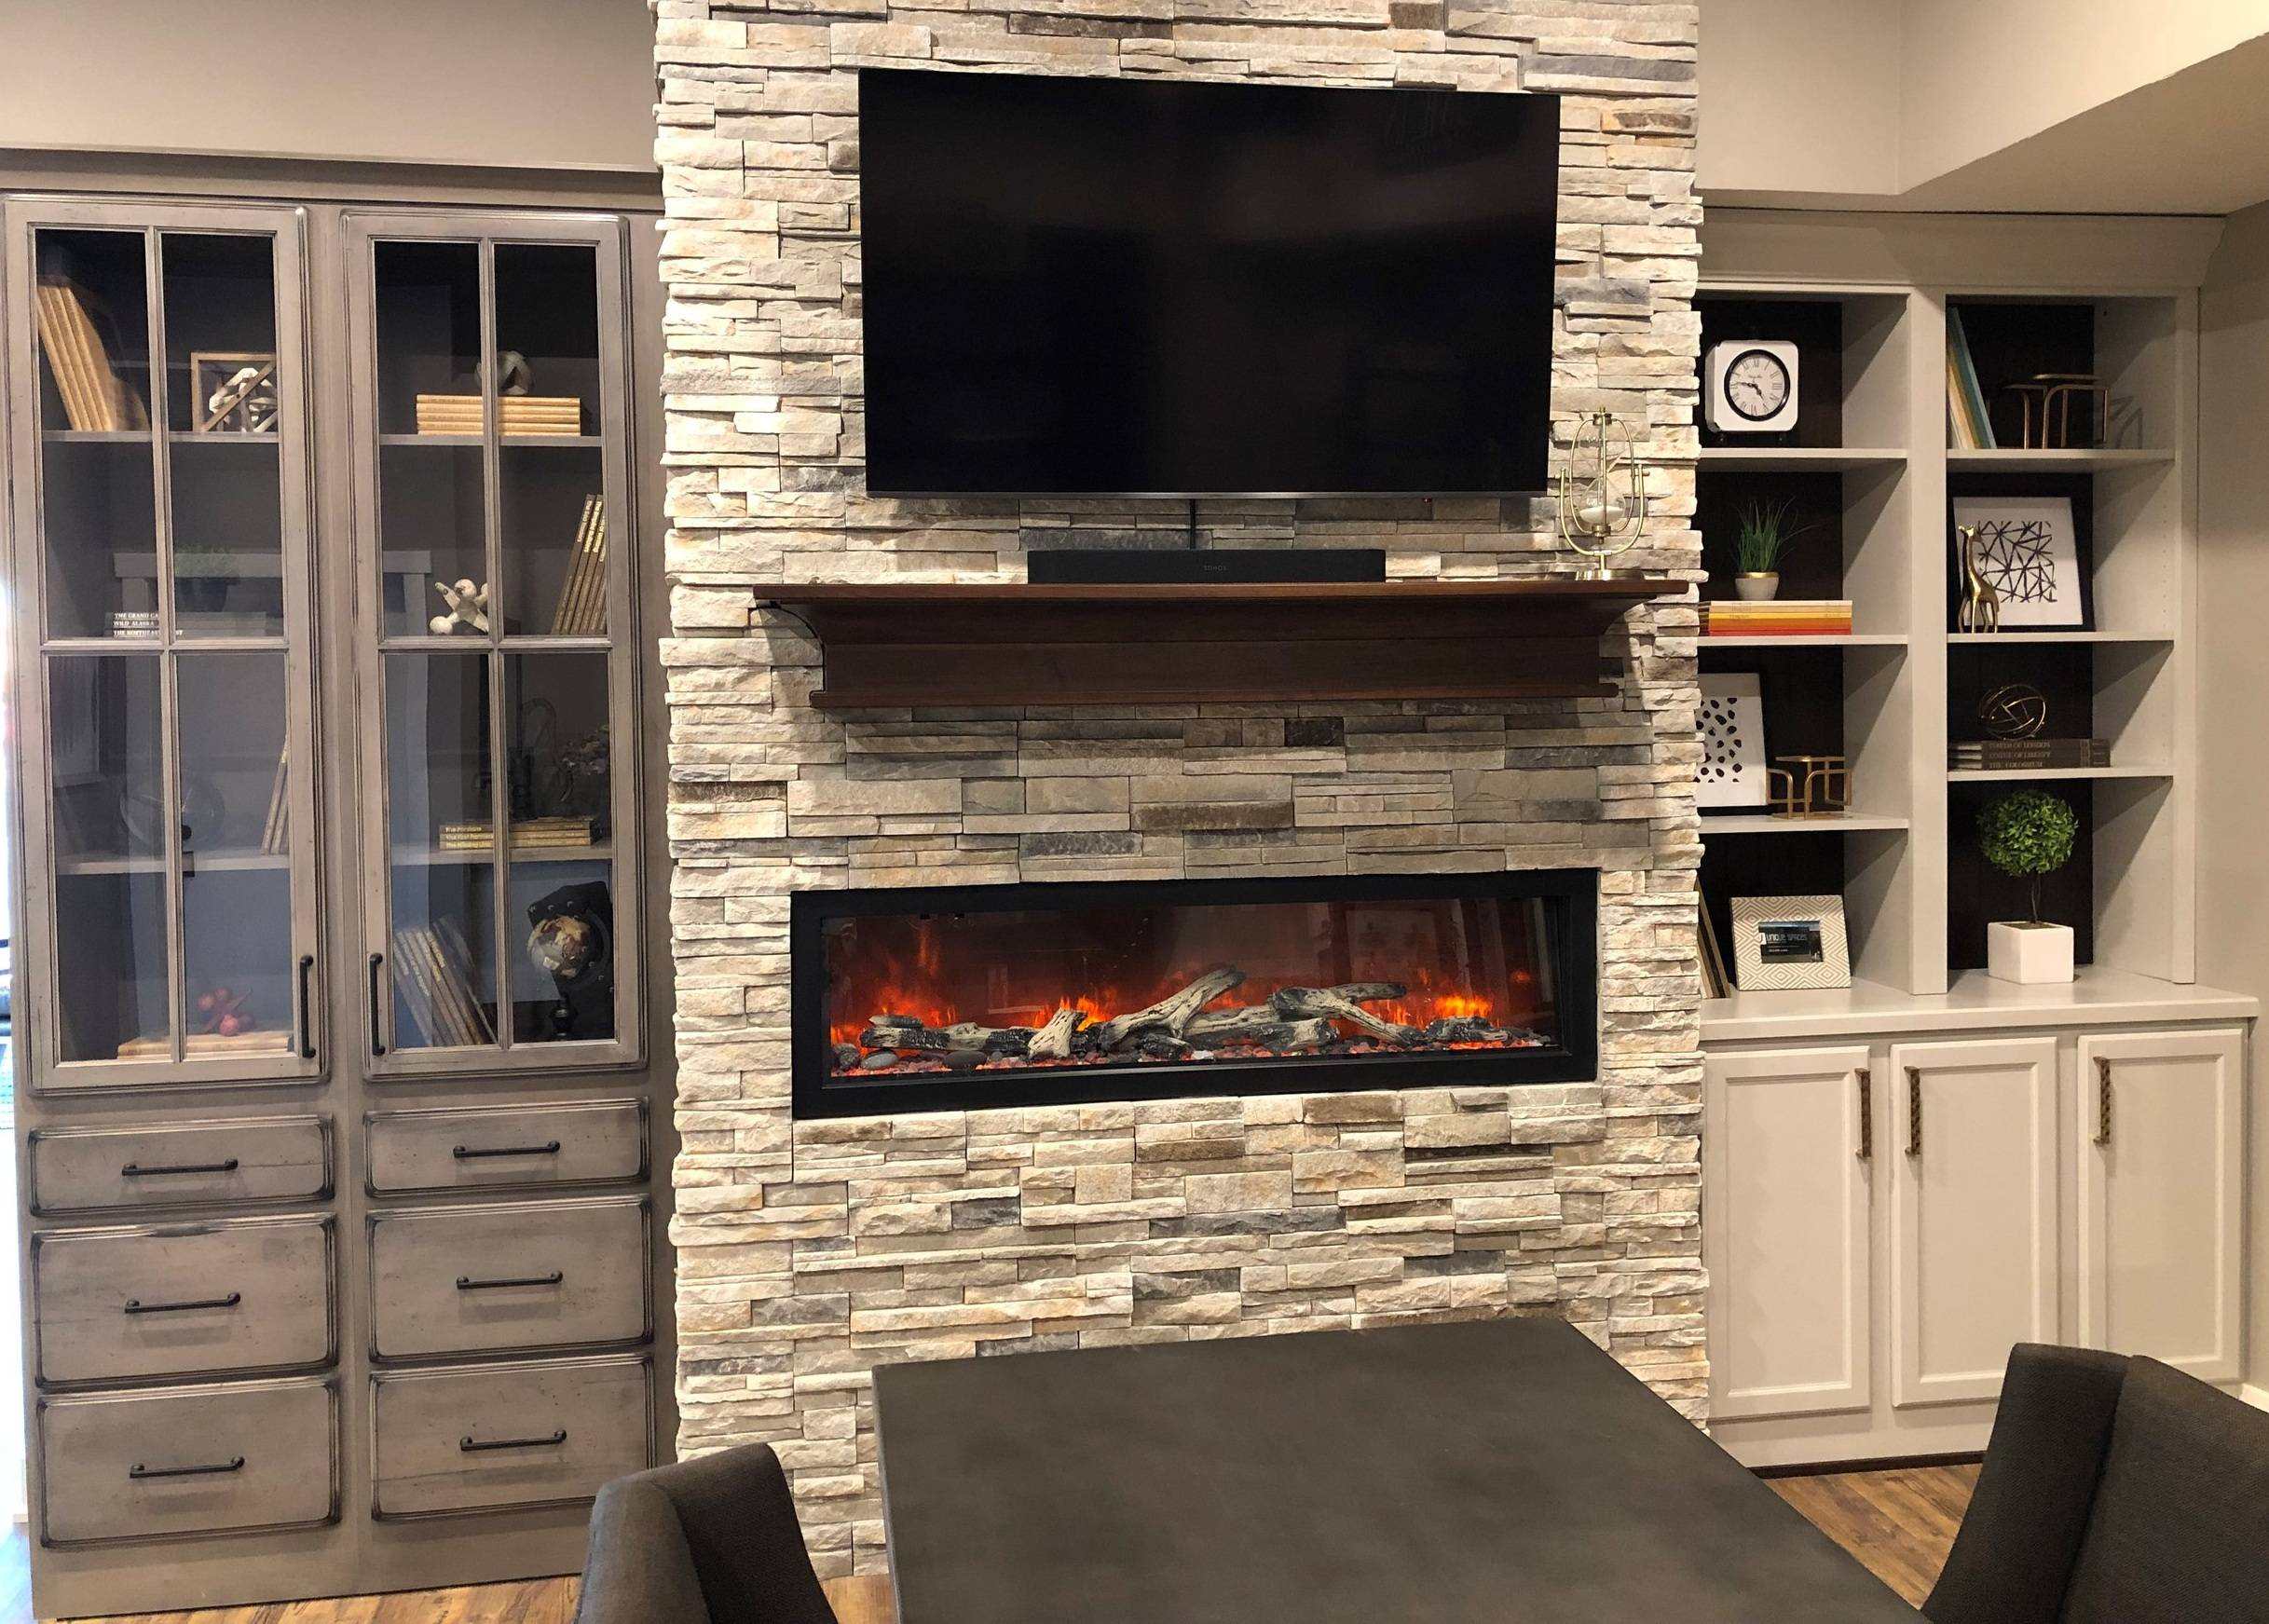 Fireplace - StarMark Cabinetry - Tudor door style in Alder finished with Driftwood stain with Ebony glaze and Deco Edge finish (left)StarMark Cabinetry - Seneca door style in Maple finished with Repose Grey tinted varnish (right)